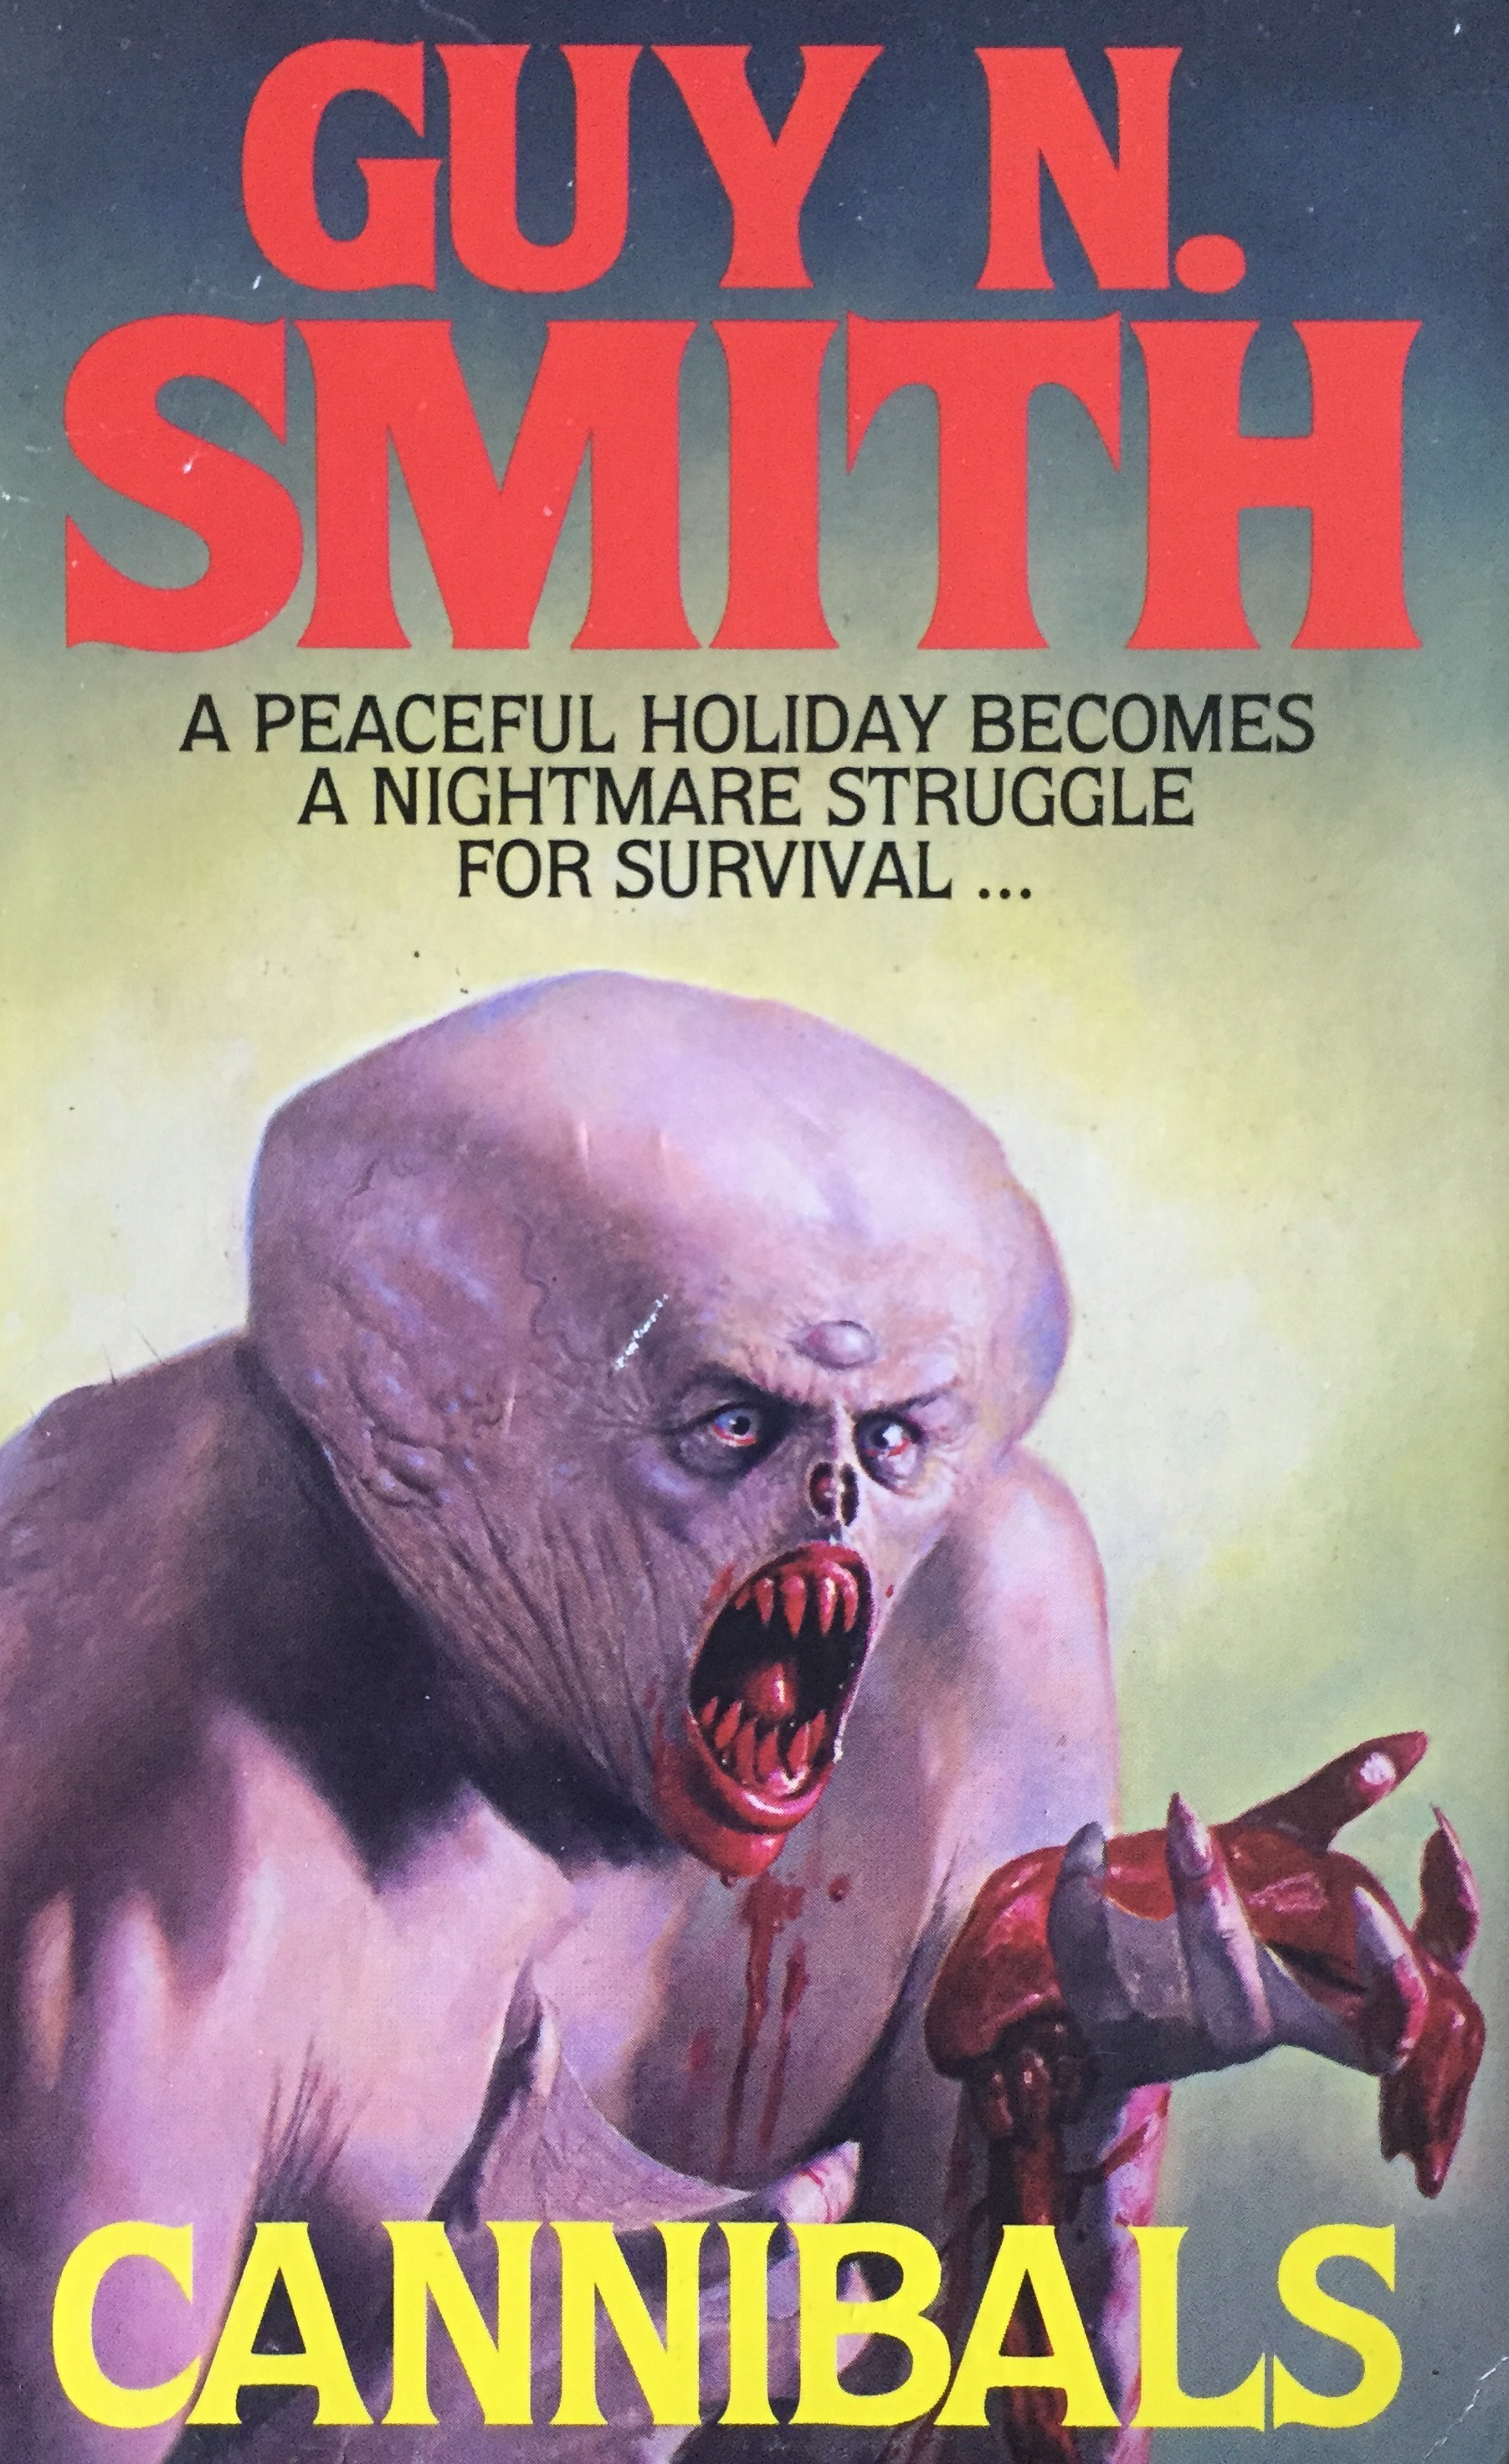 Guy N. Smith | December 1986 | 186 pages